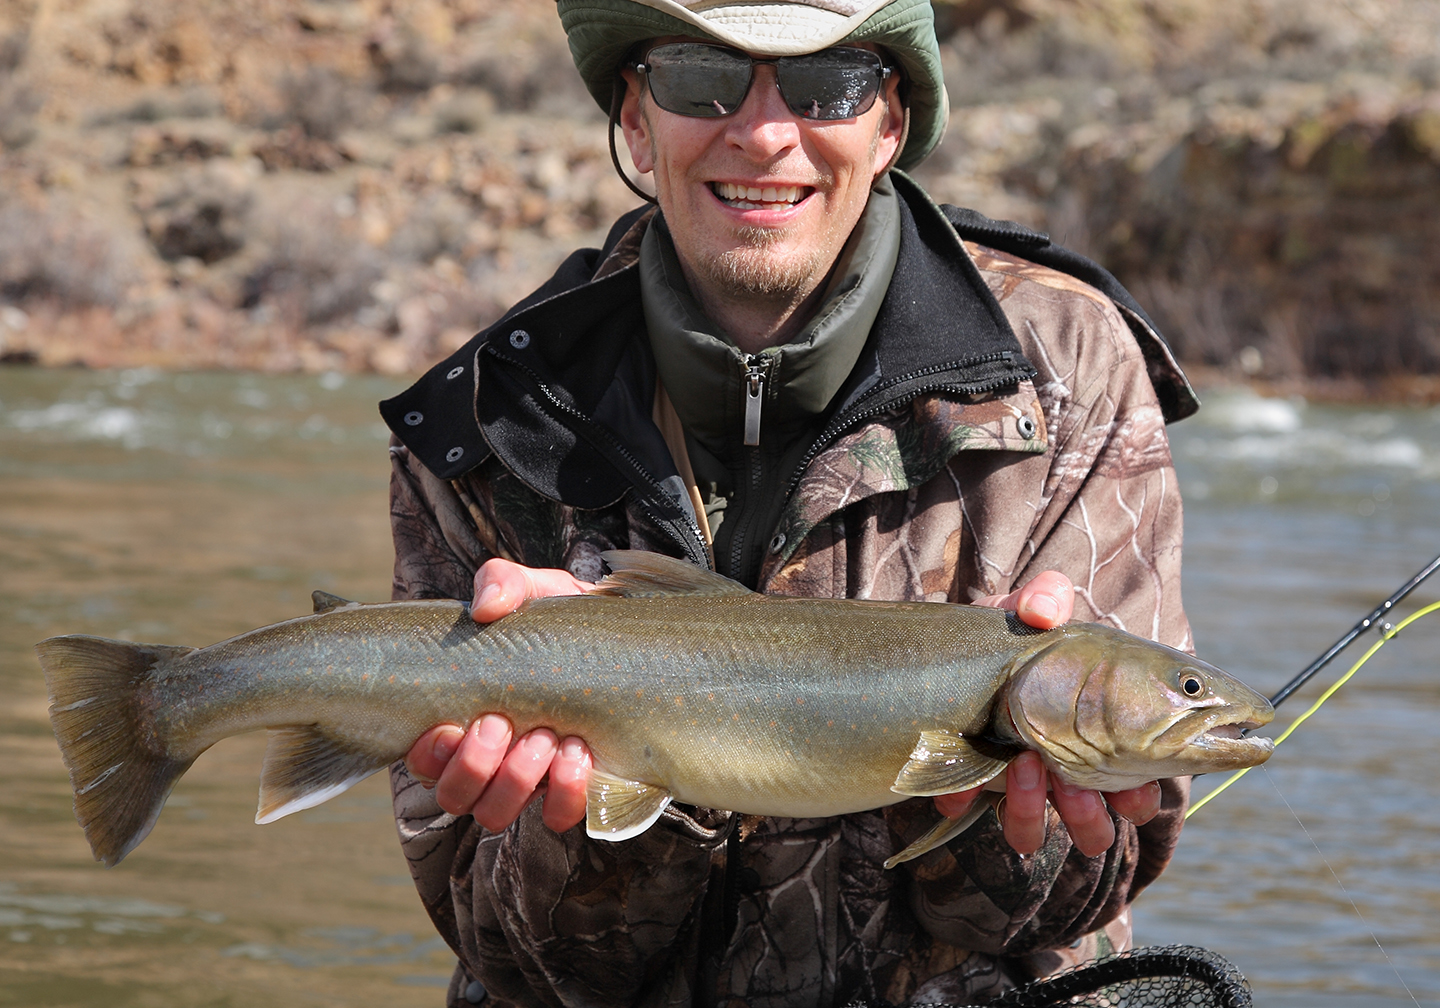 A happy angler holding a Bull Trout, one of the rarest Trout of North America